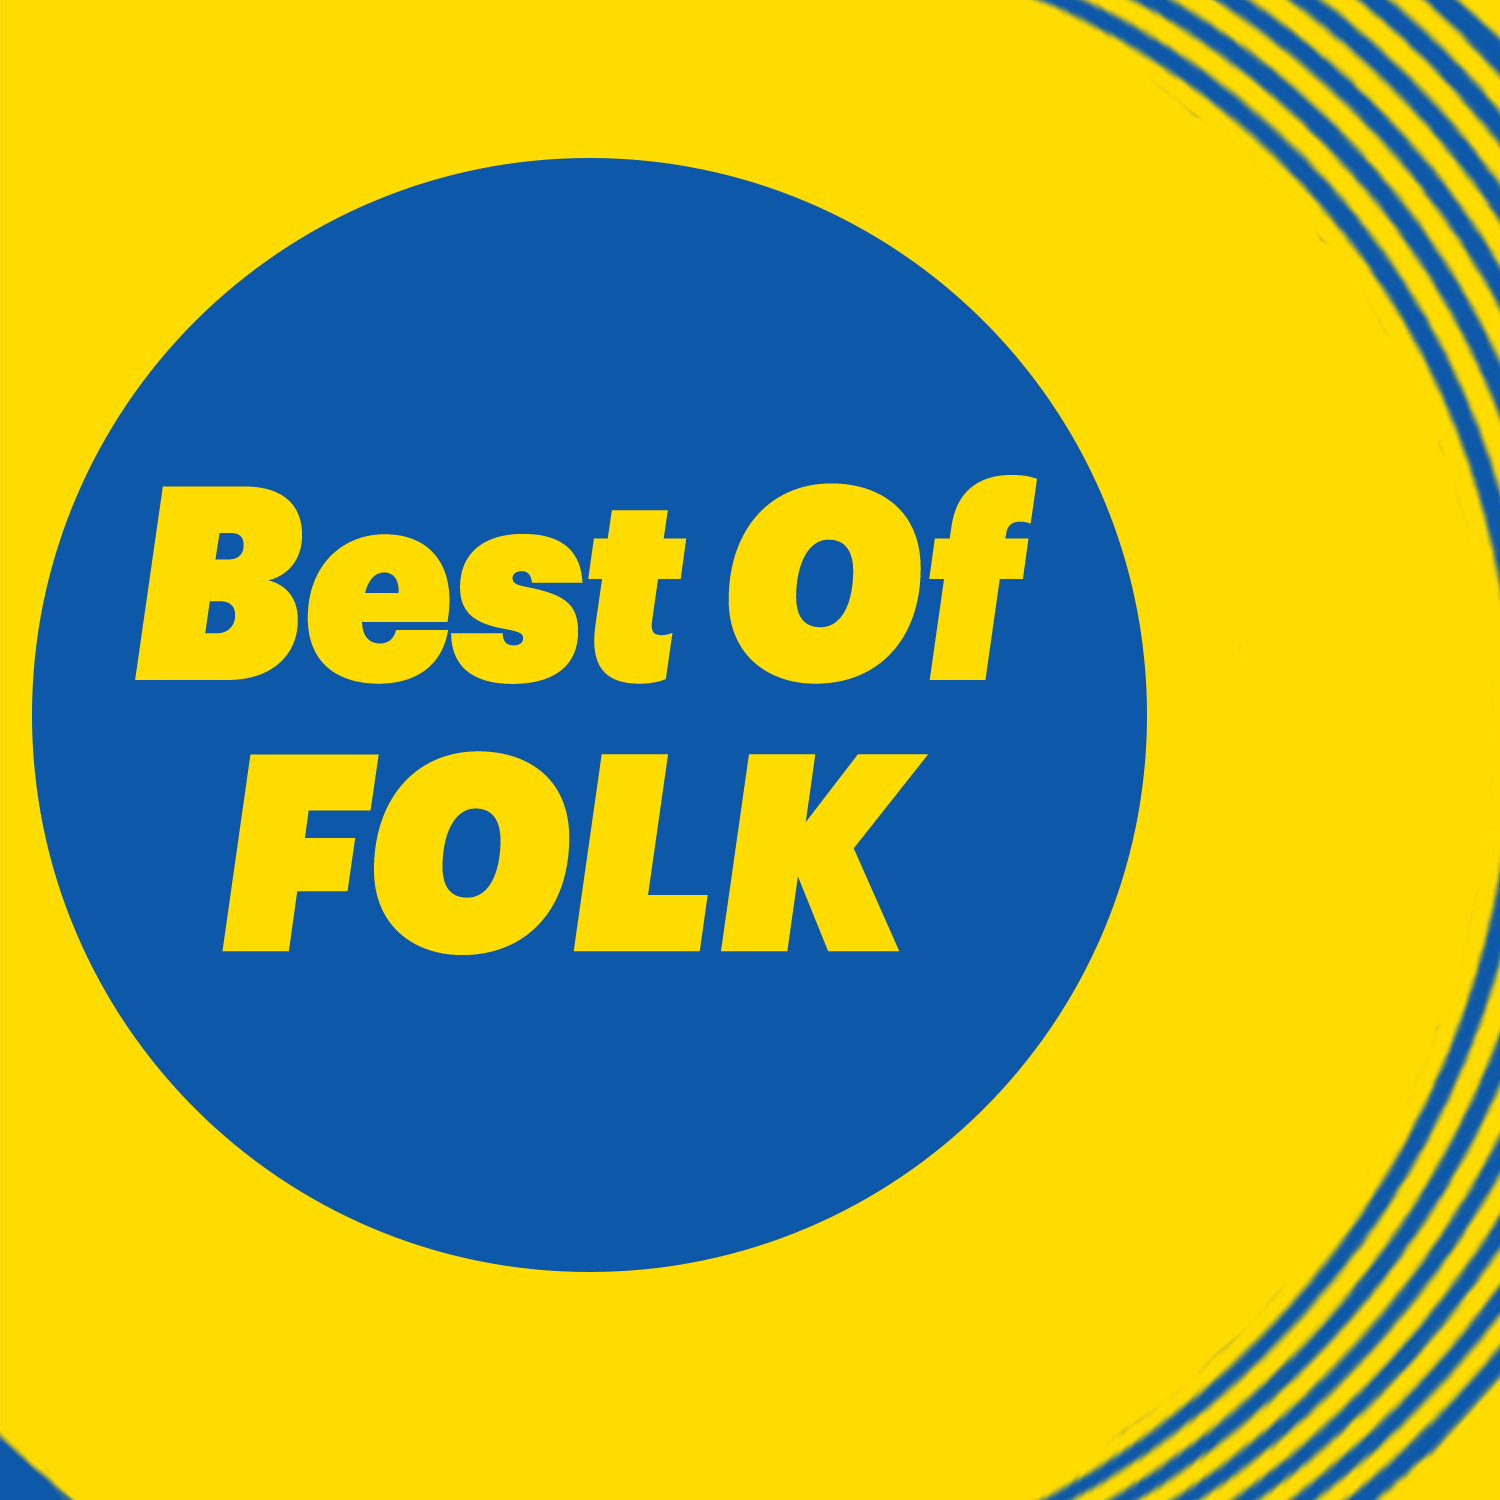 Best of Folk,Songdew